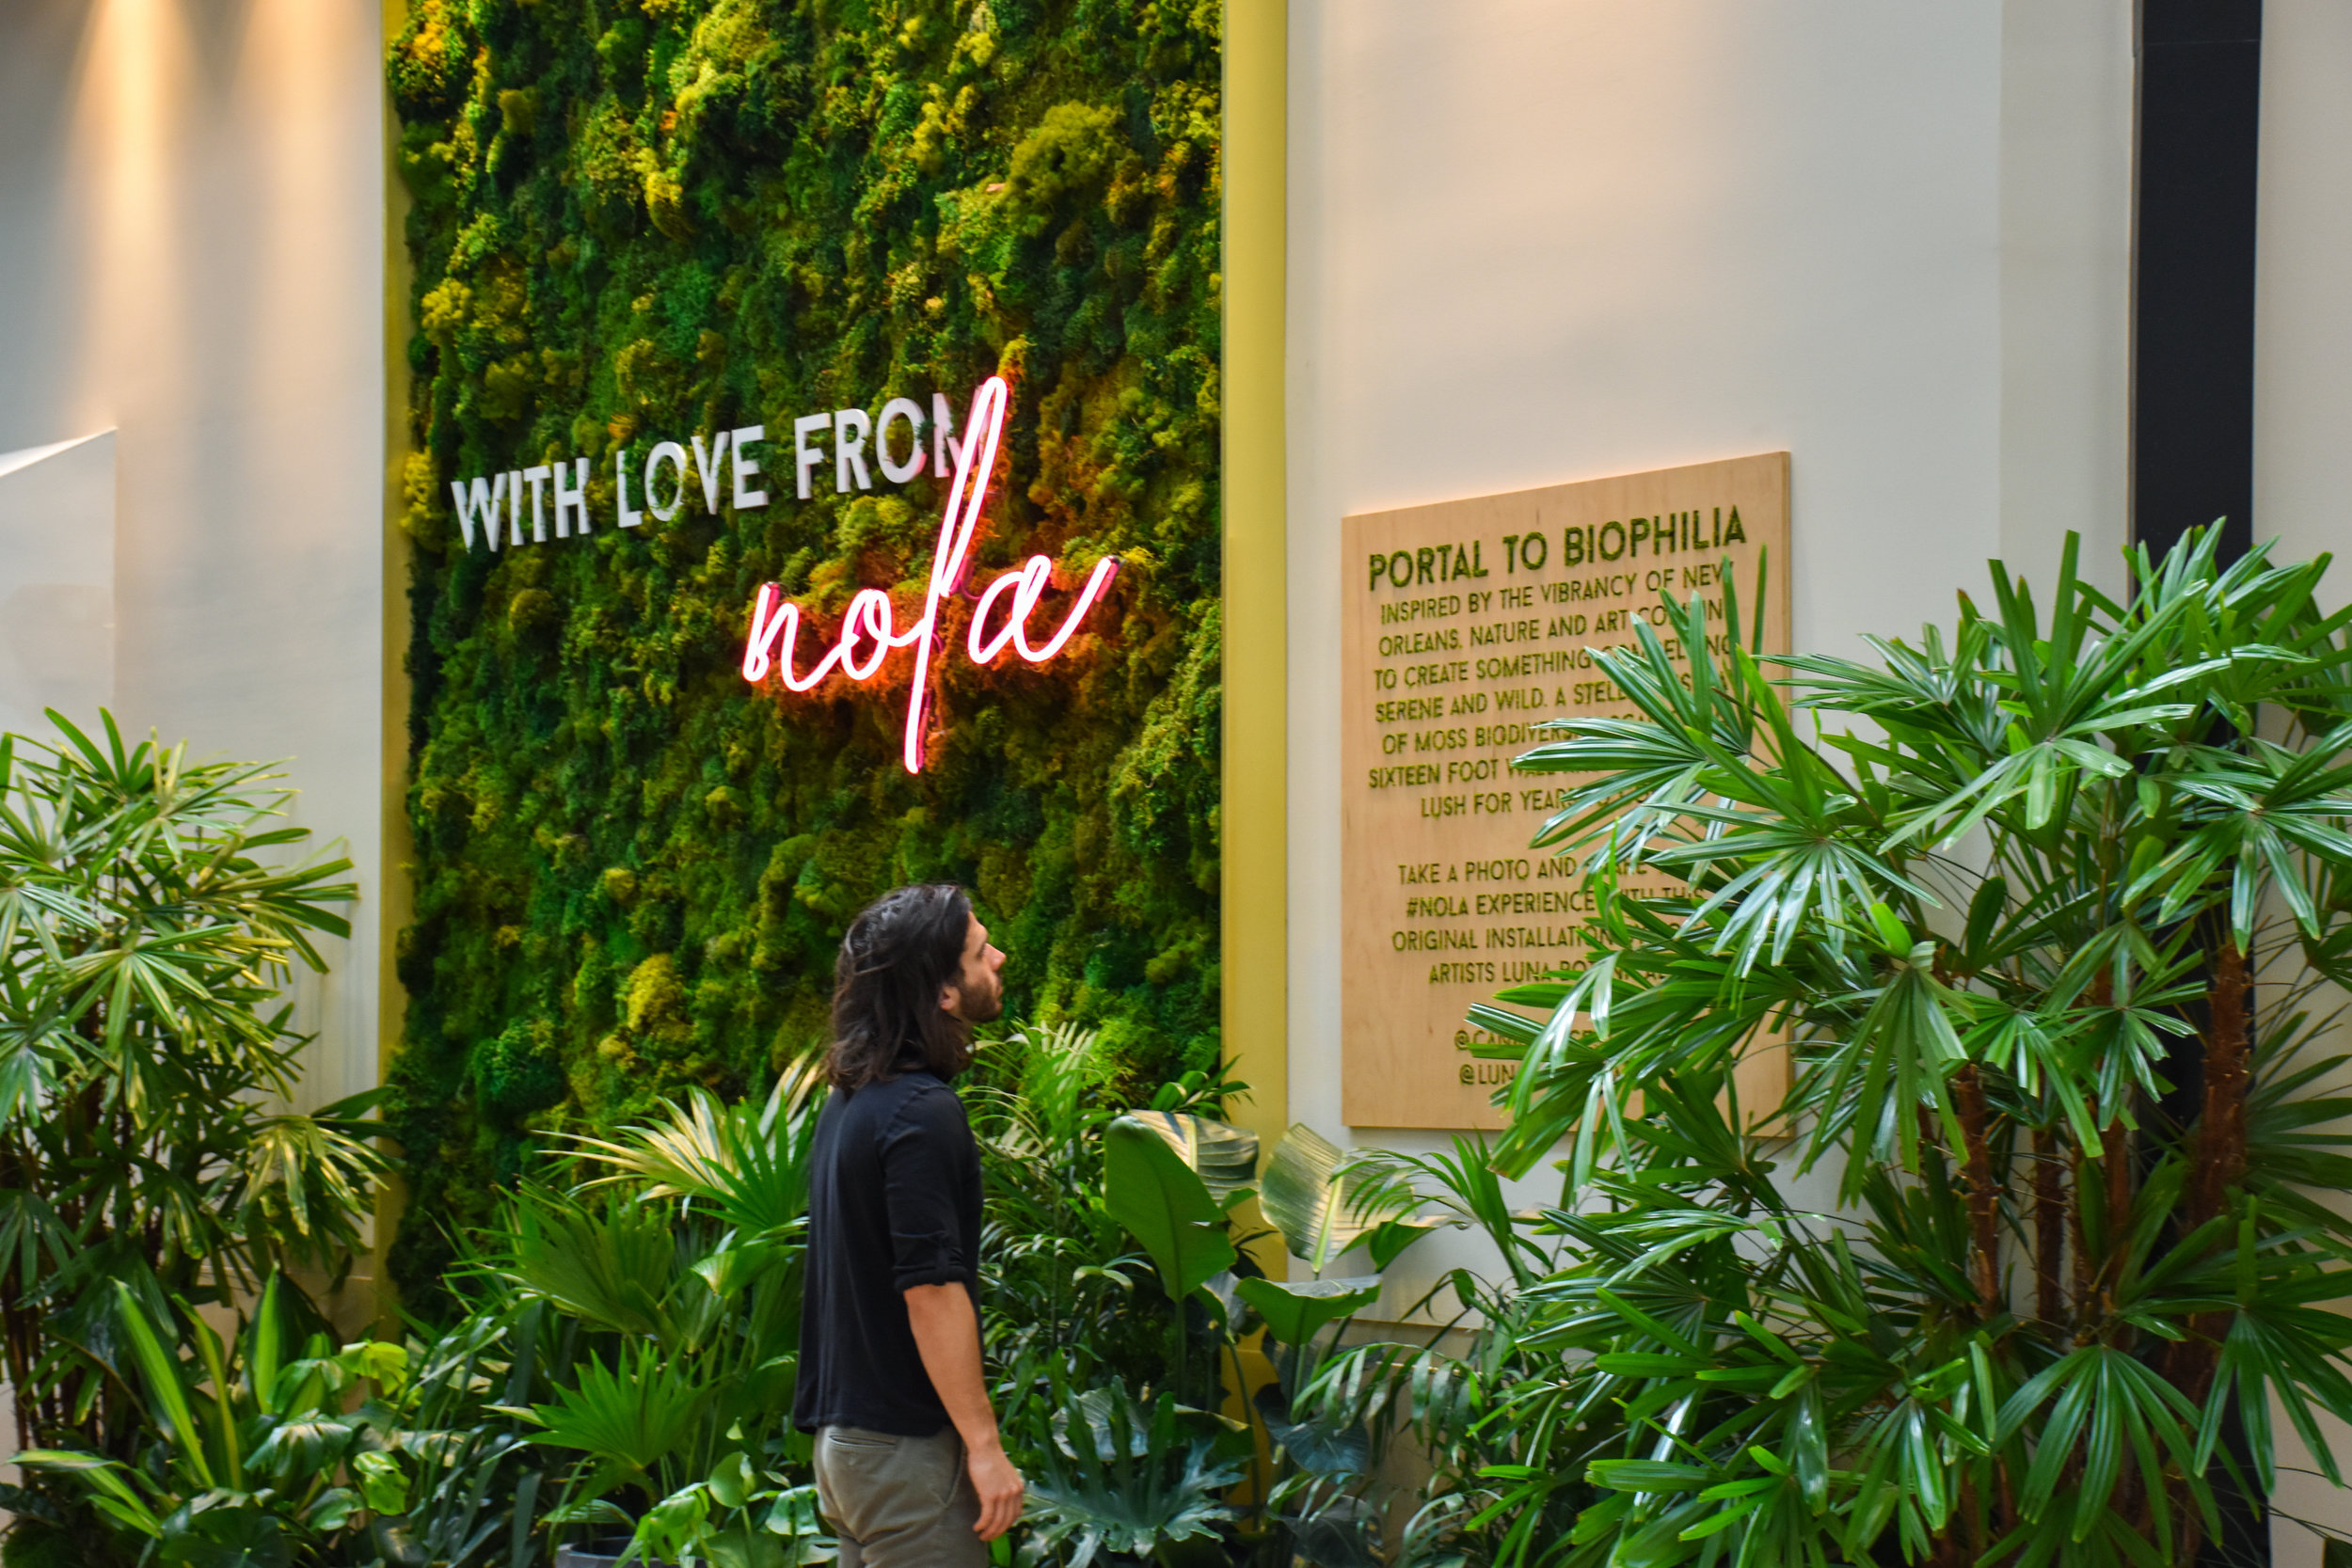 Portal to Biophilia - CREATING A LANDMARKThis original Luna Botanicals art piece was designed for Canal Place, in the heart of New Orleans. By design, since its installation, thousands of photos interacting with Portal to Biophilia have been posted by locals, tourists and celebrities alike.